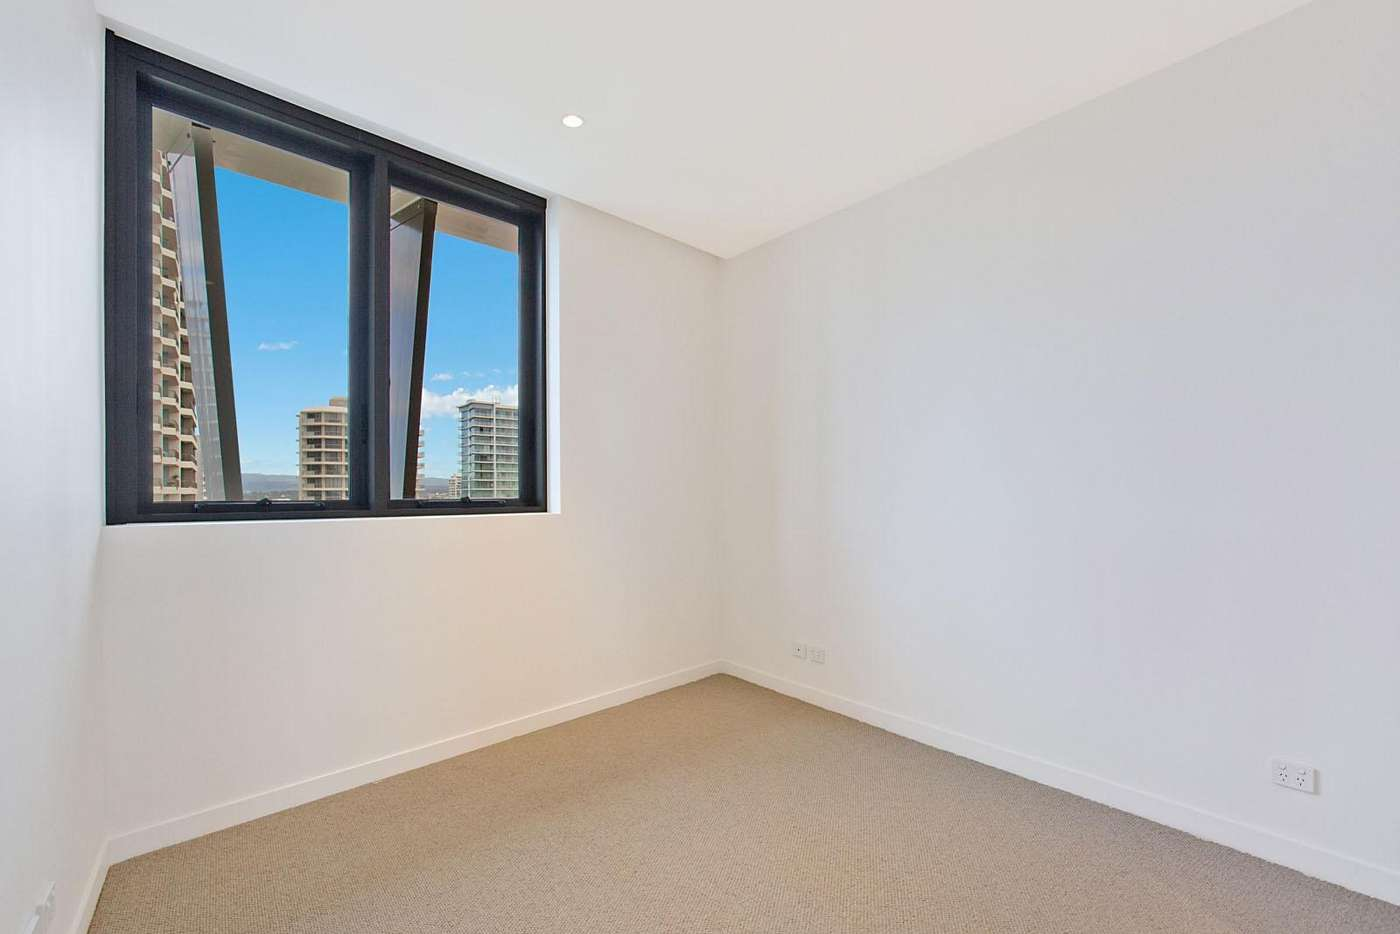 Sixth view of Homely apartment listing, 804/3 Northcliffe Terrace, Surfers Paradise QLD 4217